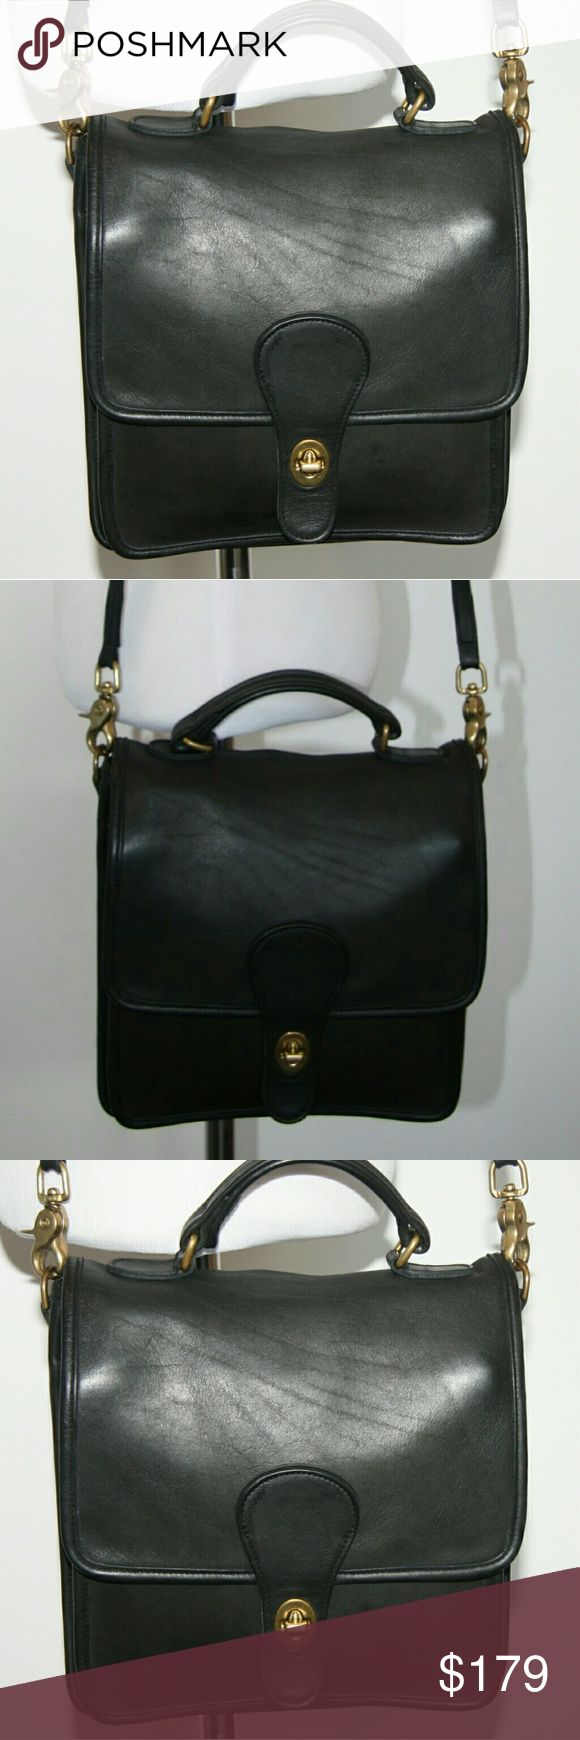 """Coach Vintage Station Bag in Black Fantastic Vintage Condition! Iconic Legacy Coach Purse: the Station Bag.  Vintage Coach Crossbody Bag. Black leather. Legacy Coach model.  Brass hardware.  Authentic classic Coach.  Coach hang tag.  All original hardware. Completely clean inside.  Serial No. A6L-5180.  9"""" wide x 9"""" tall x 3"""" deep.  21"""" strap drop.   B01070 Coach Bags Crossbody Bags"""